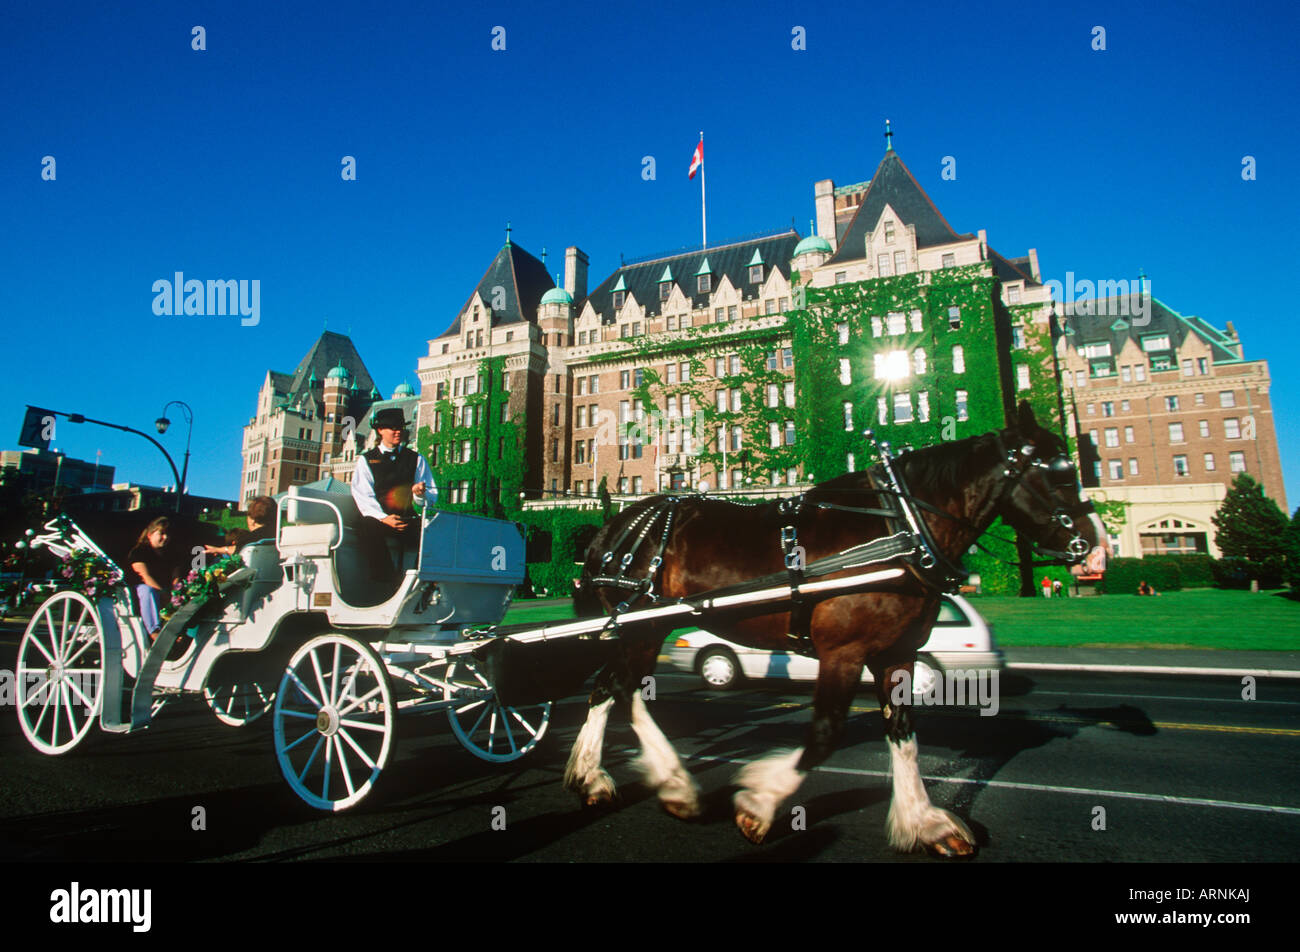 Horse drawn carriage in front of the Empress Hotel, Victoria, Vancouver Island, British Columbia, Canada. - Stock Image